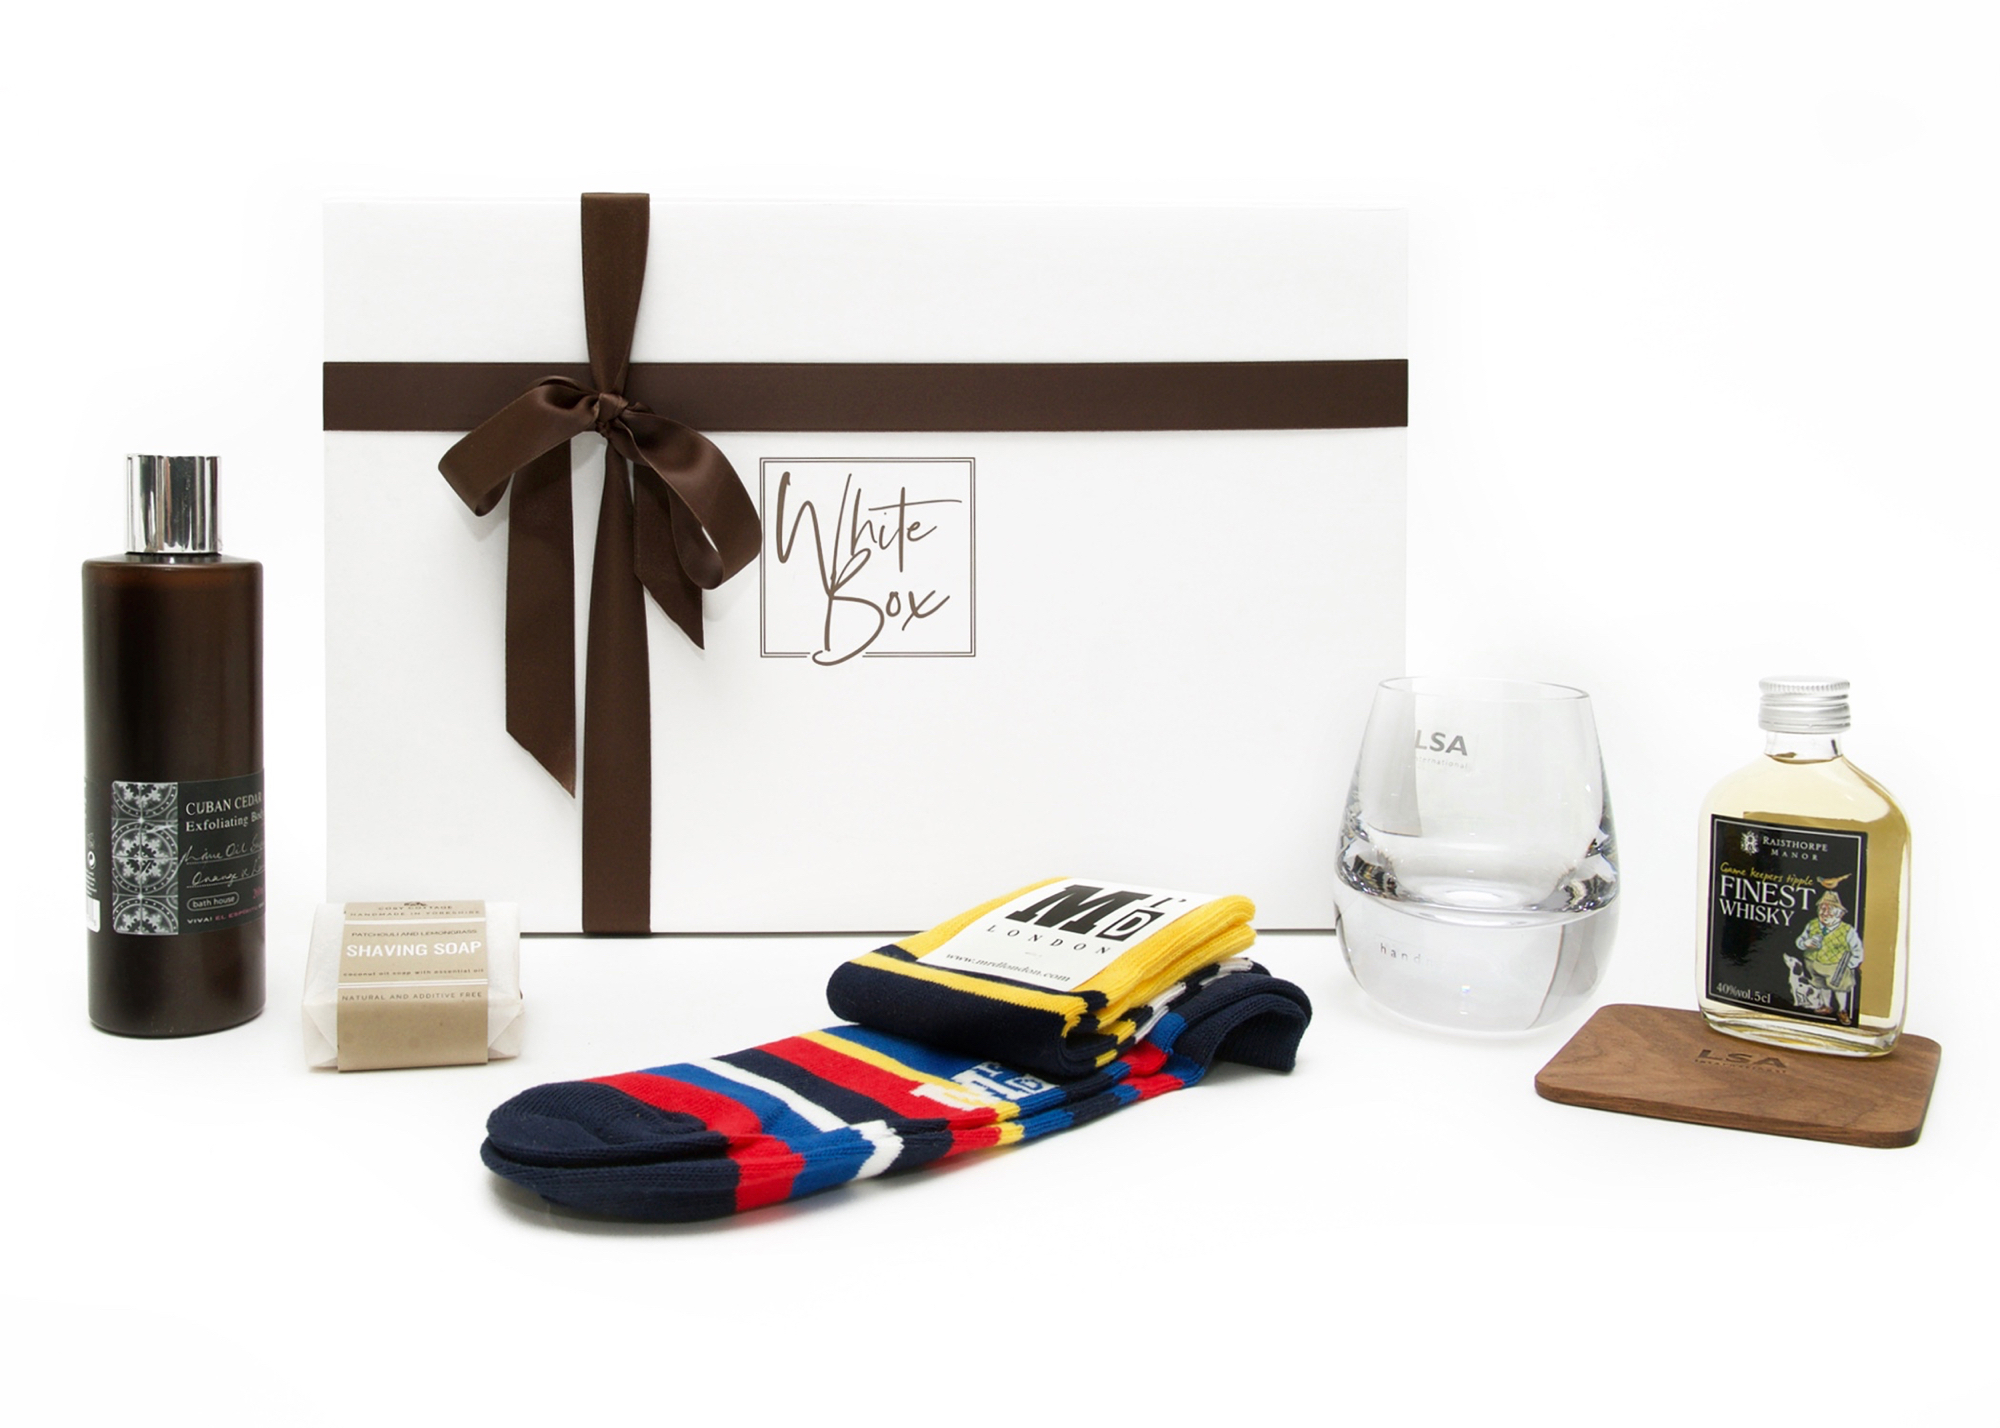 corporate gift services uk